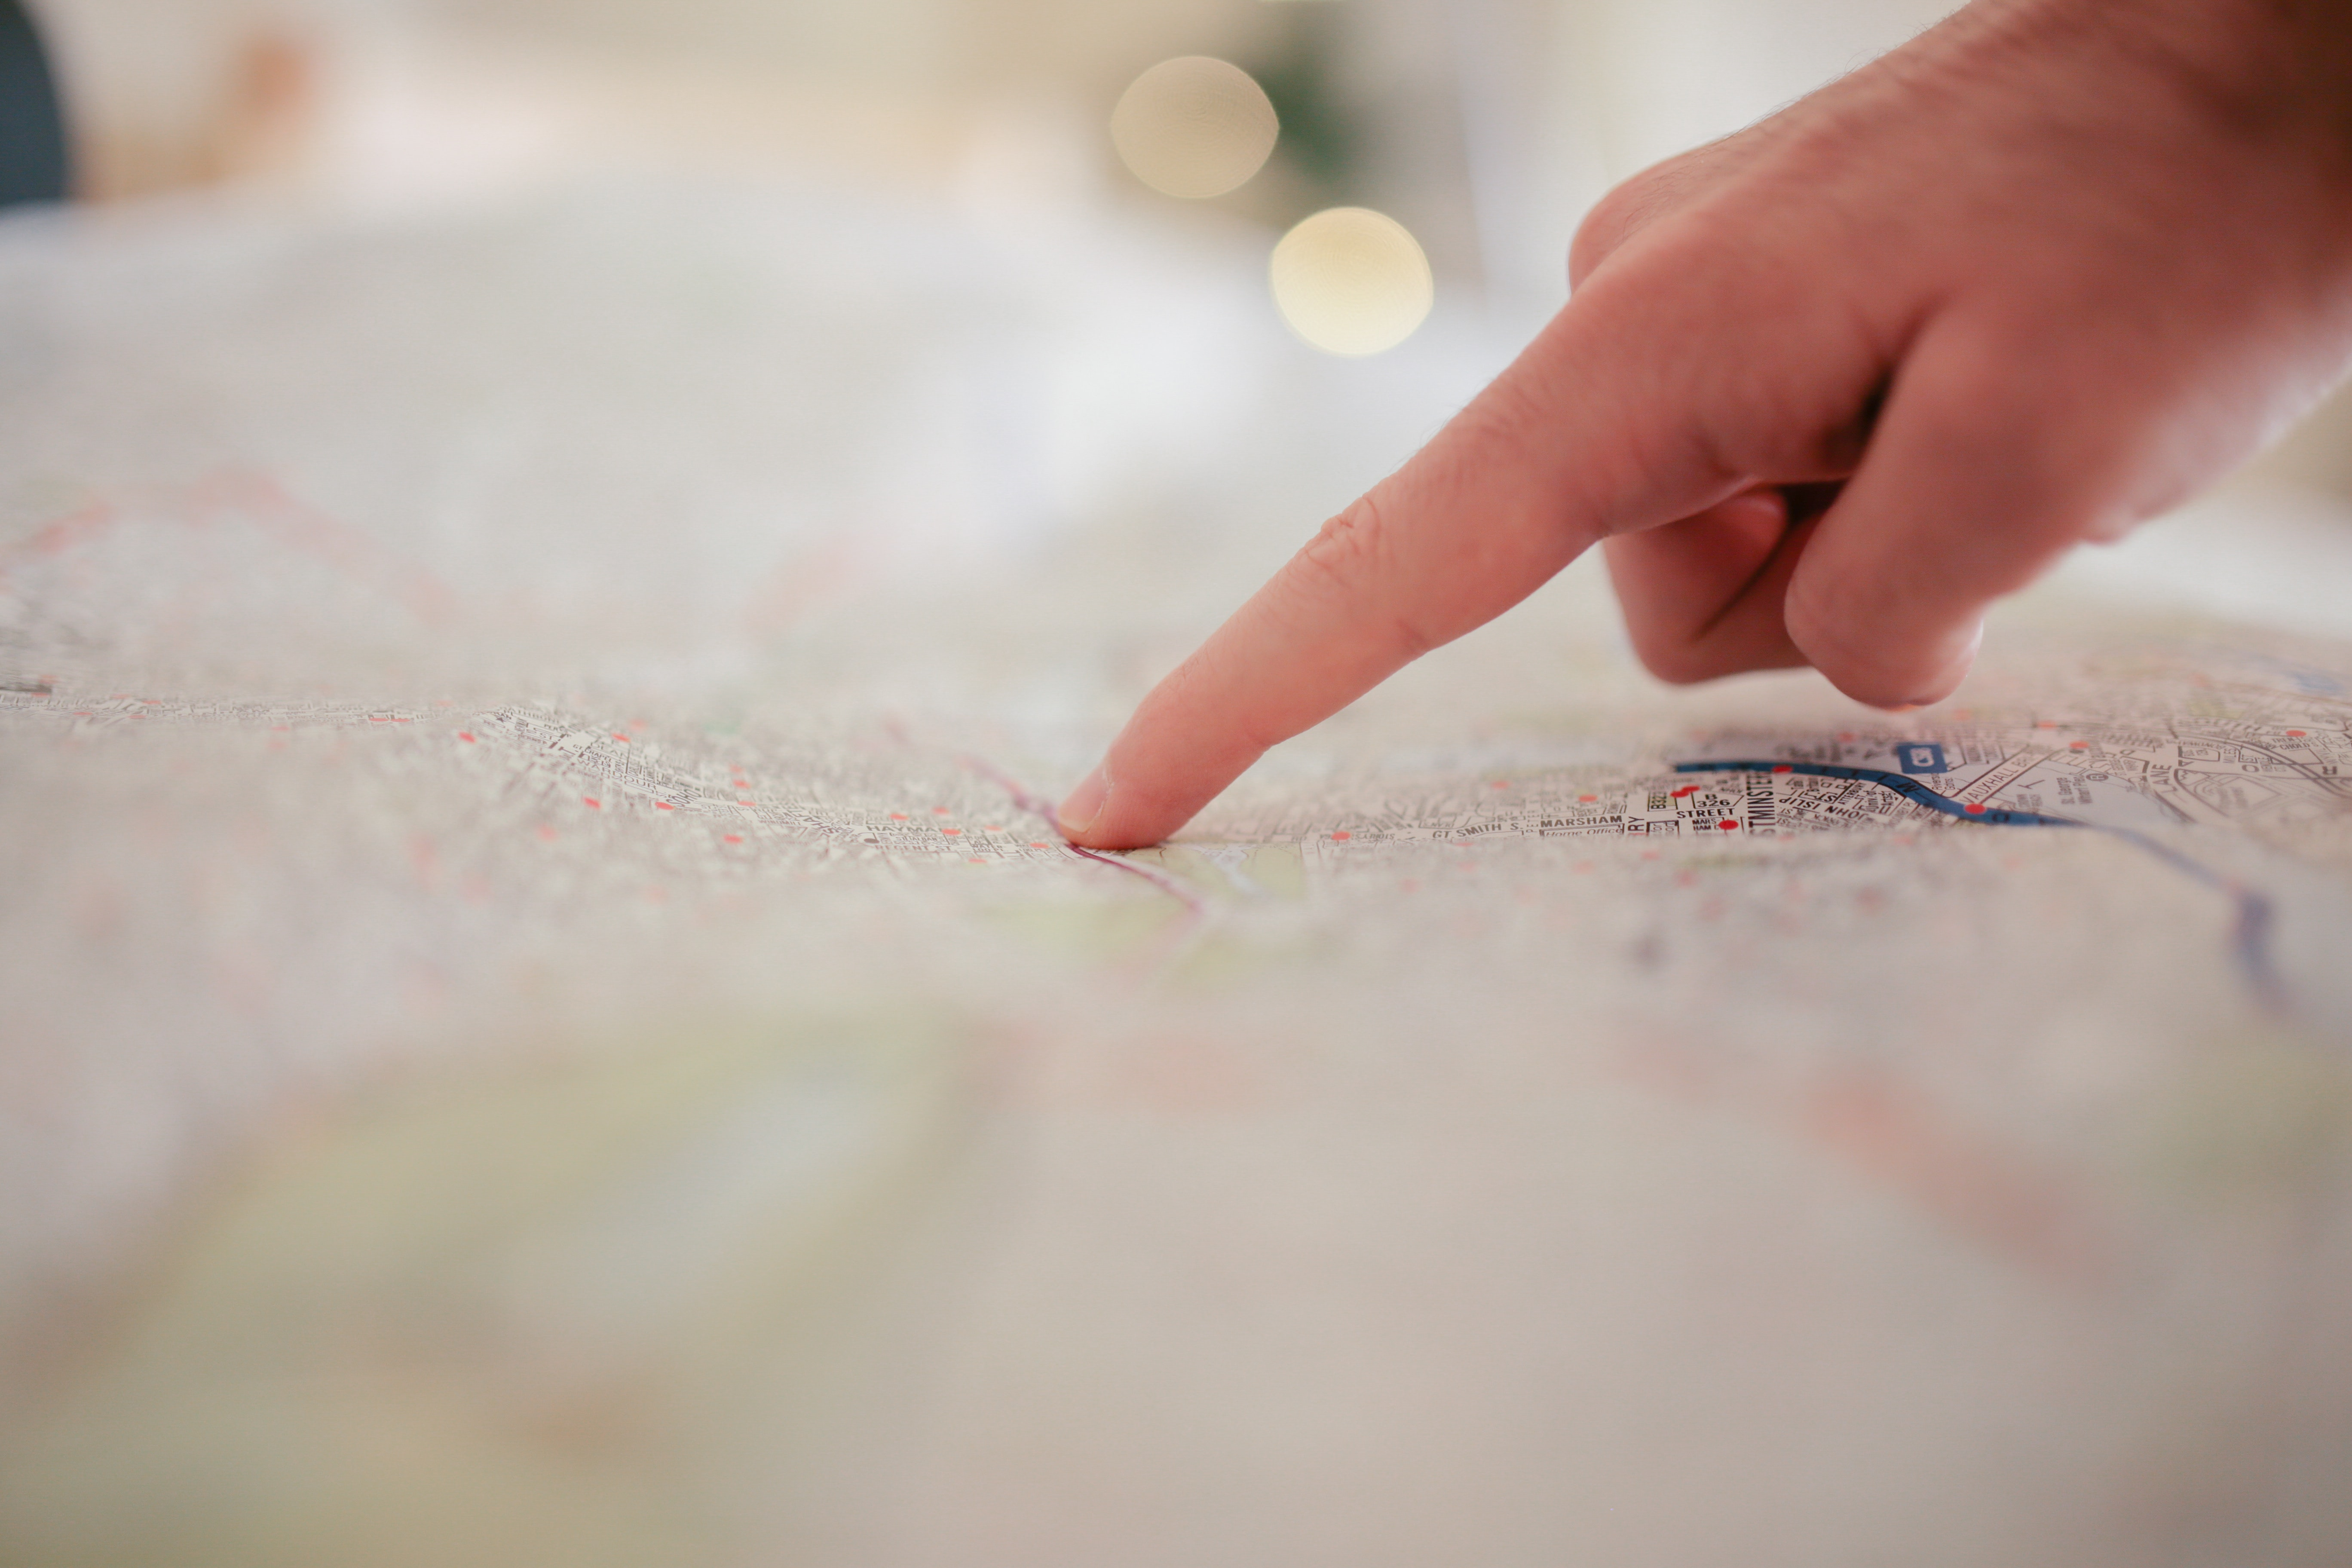 mission statements are like maps for your company